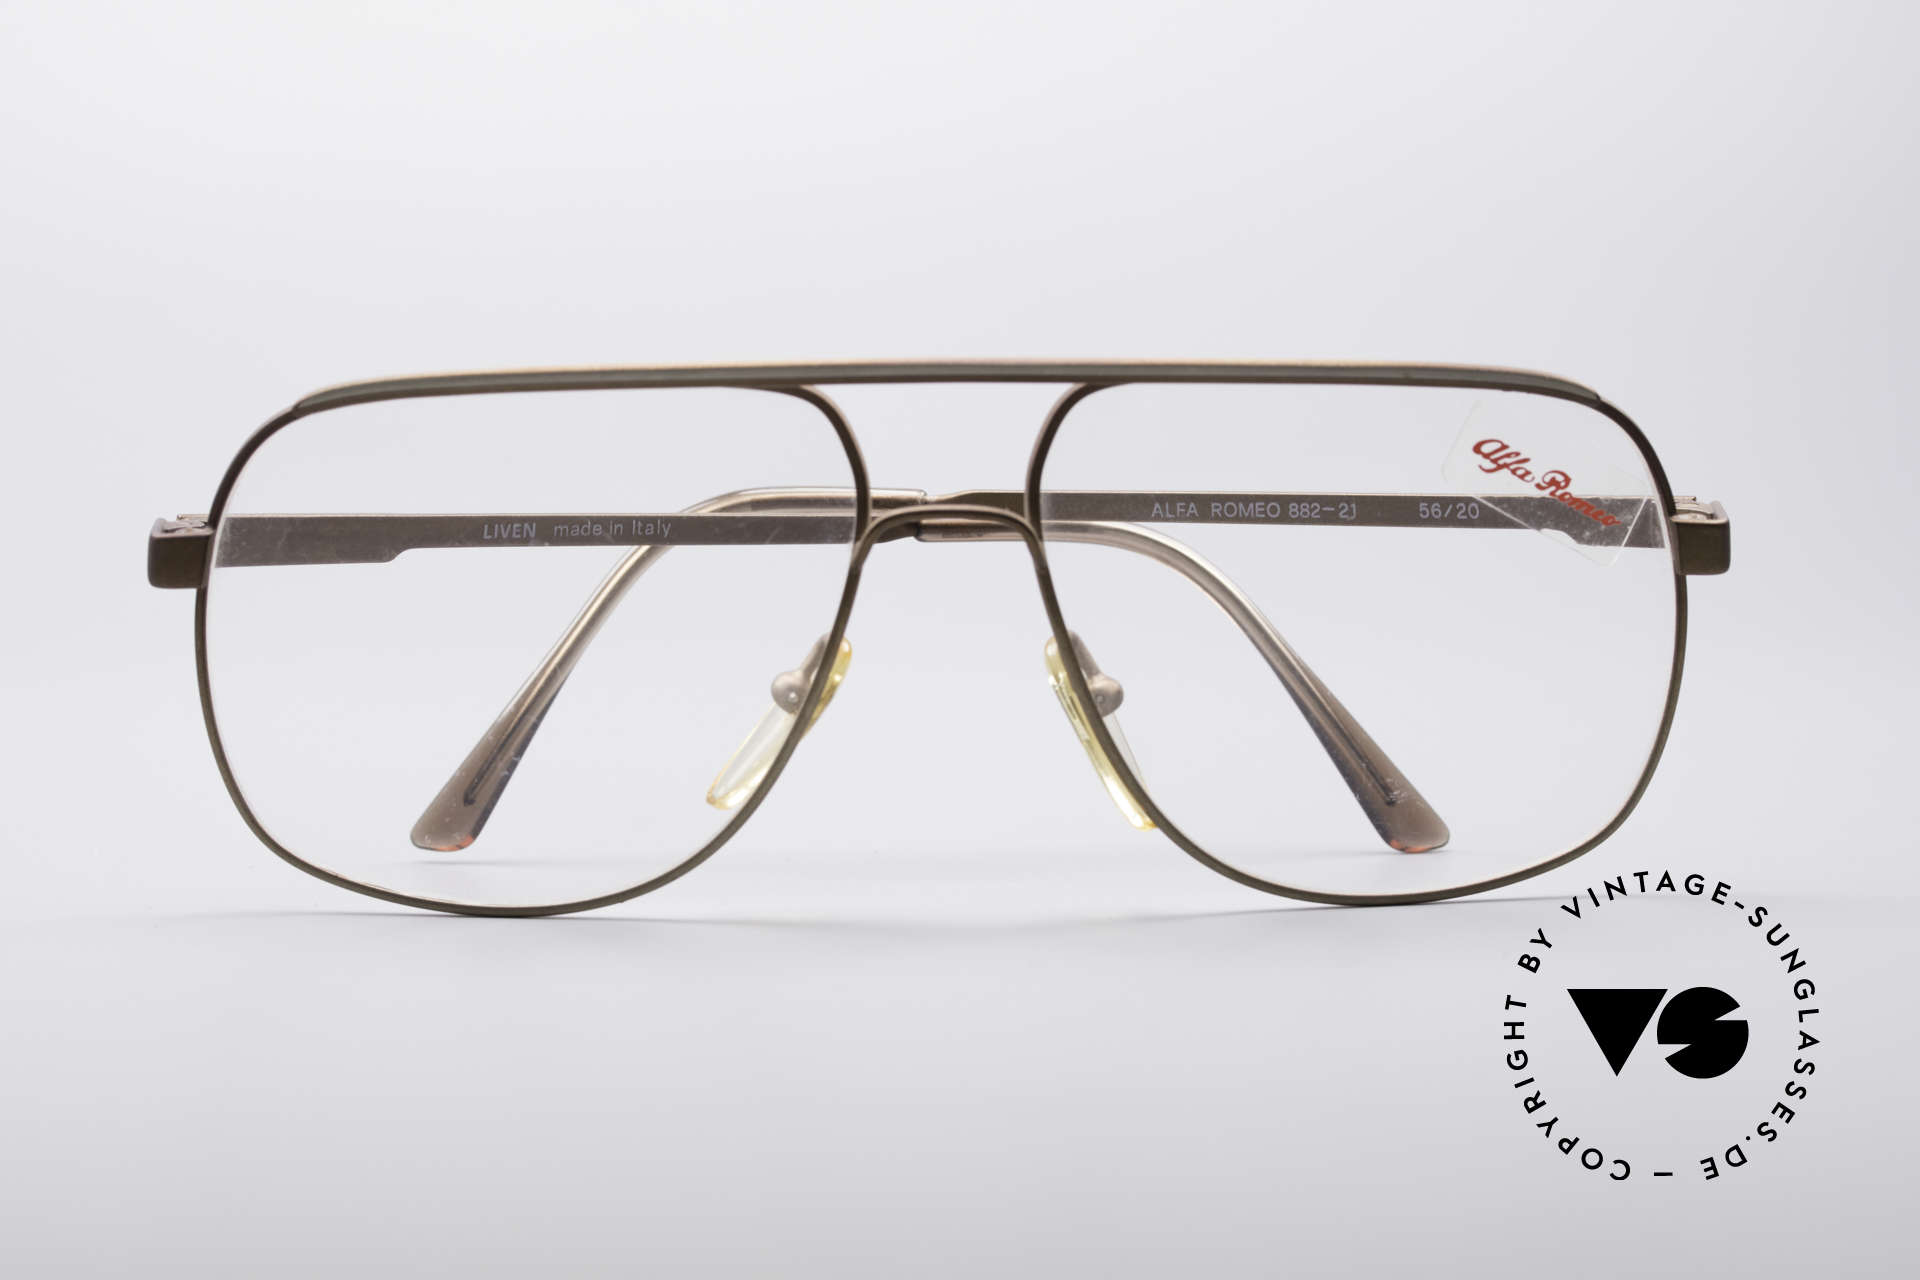 Alfa Romeo 882-21 80's Vintage Glasses, NO RETRO eyewear, but true vintage commodity; vertu, Made for Men